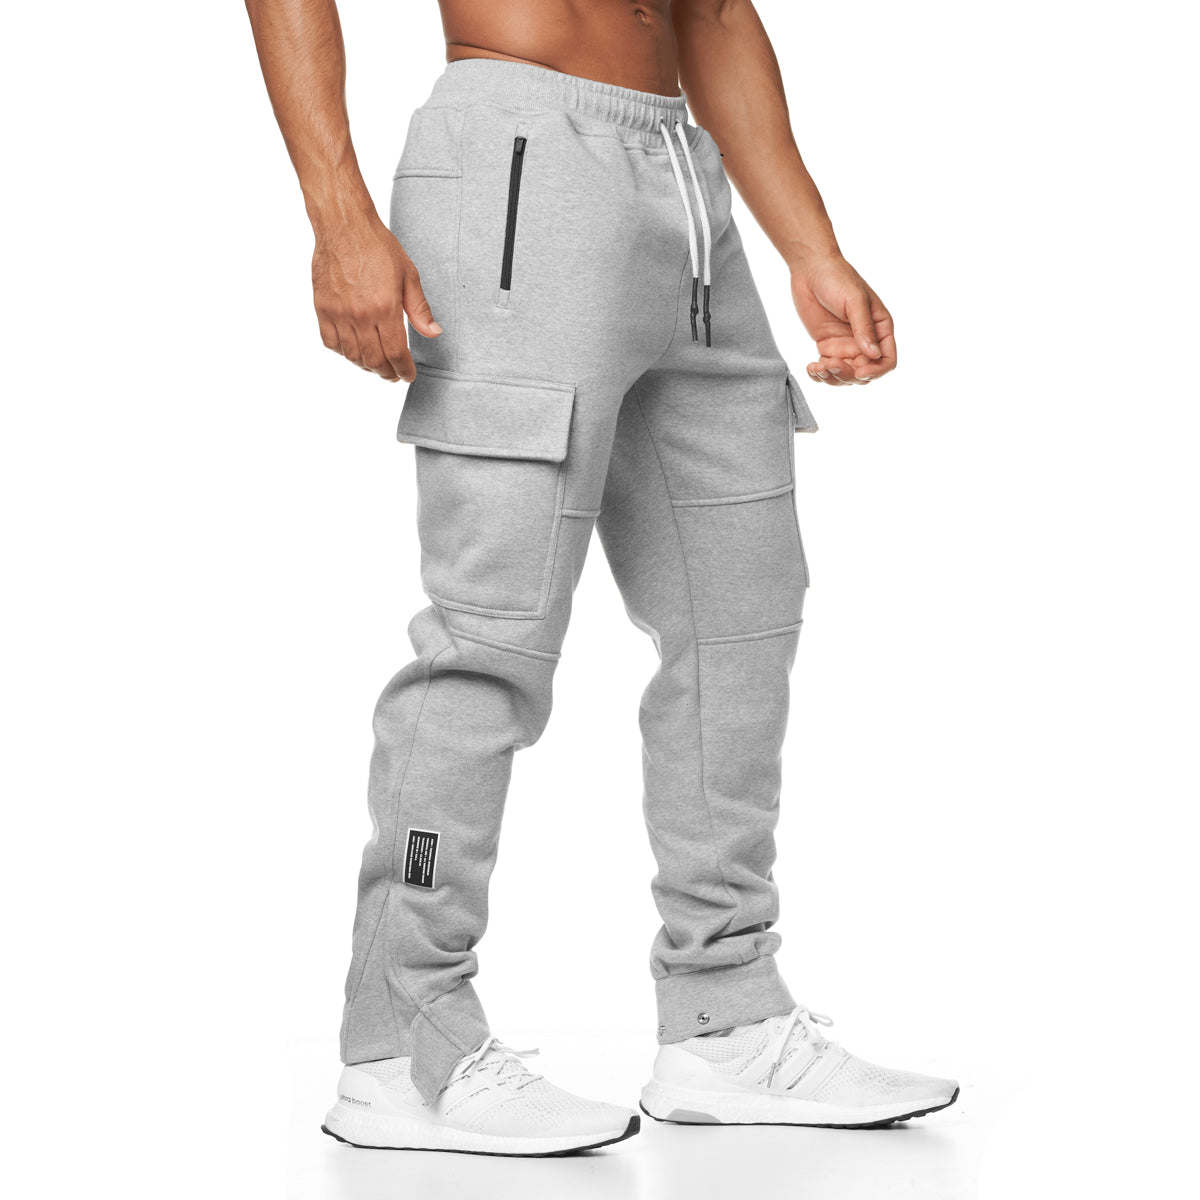 0217. RainPlus™ Cargo Snap Button Jogger - Heather Grey